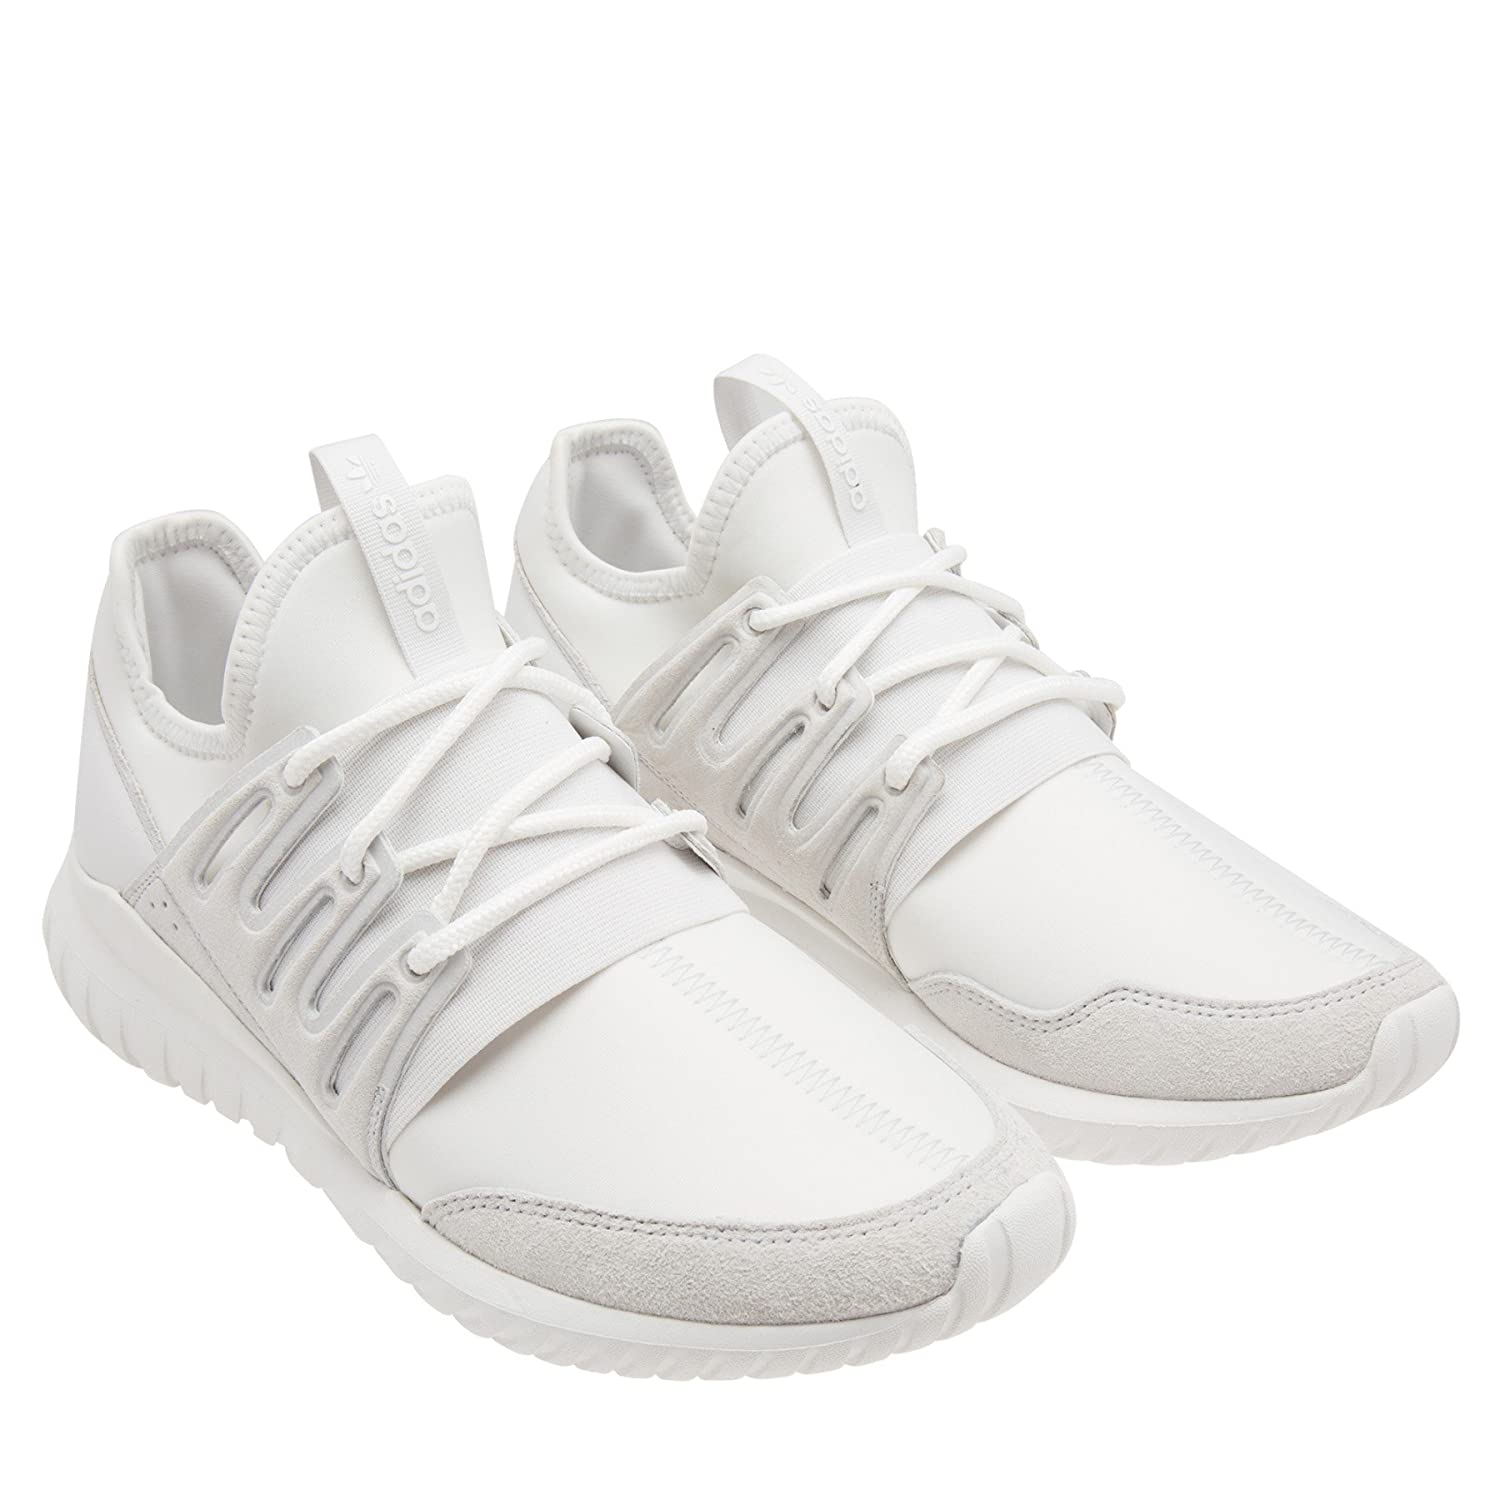 72955b1f1d0e Adidas Tubular Radial Mens in Crystal White by Adidas